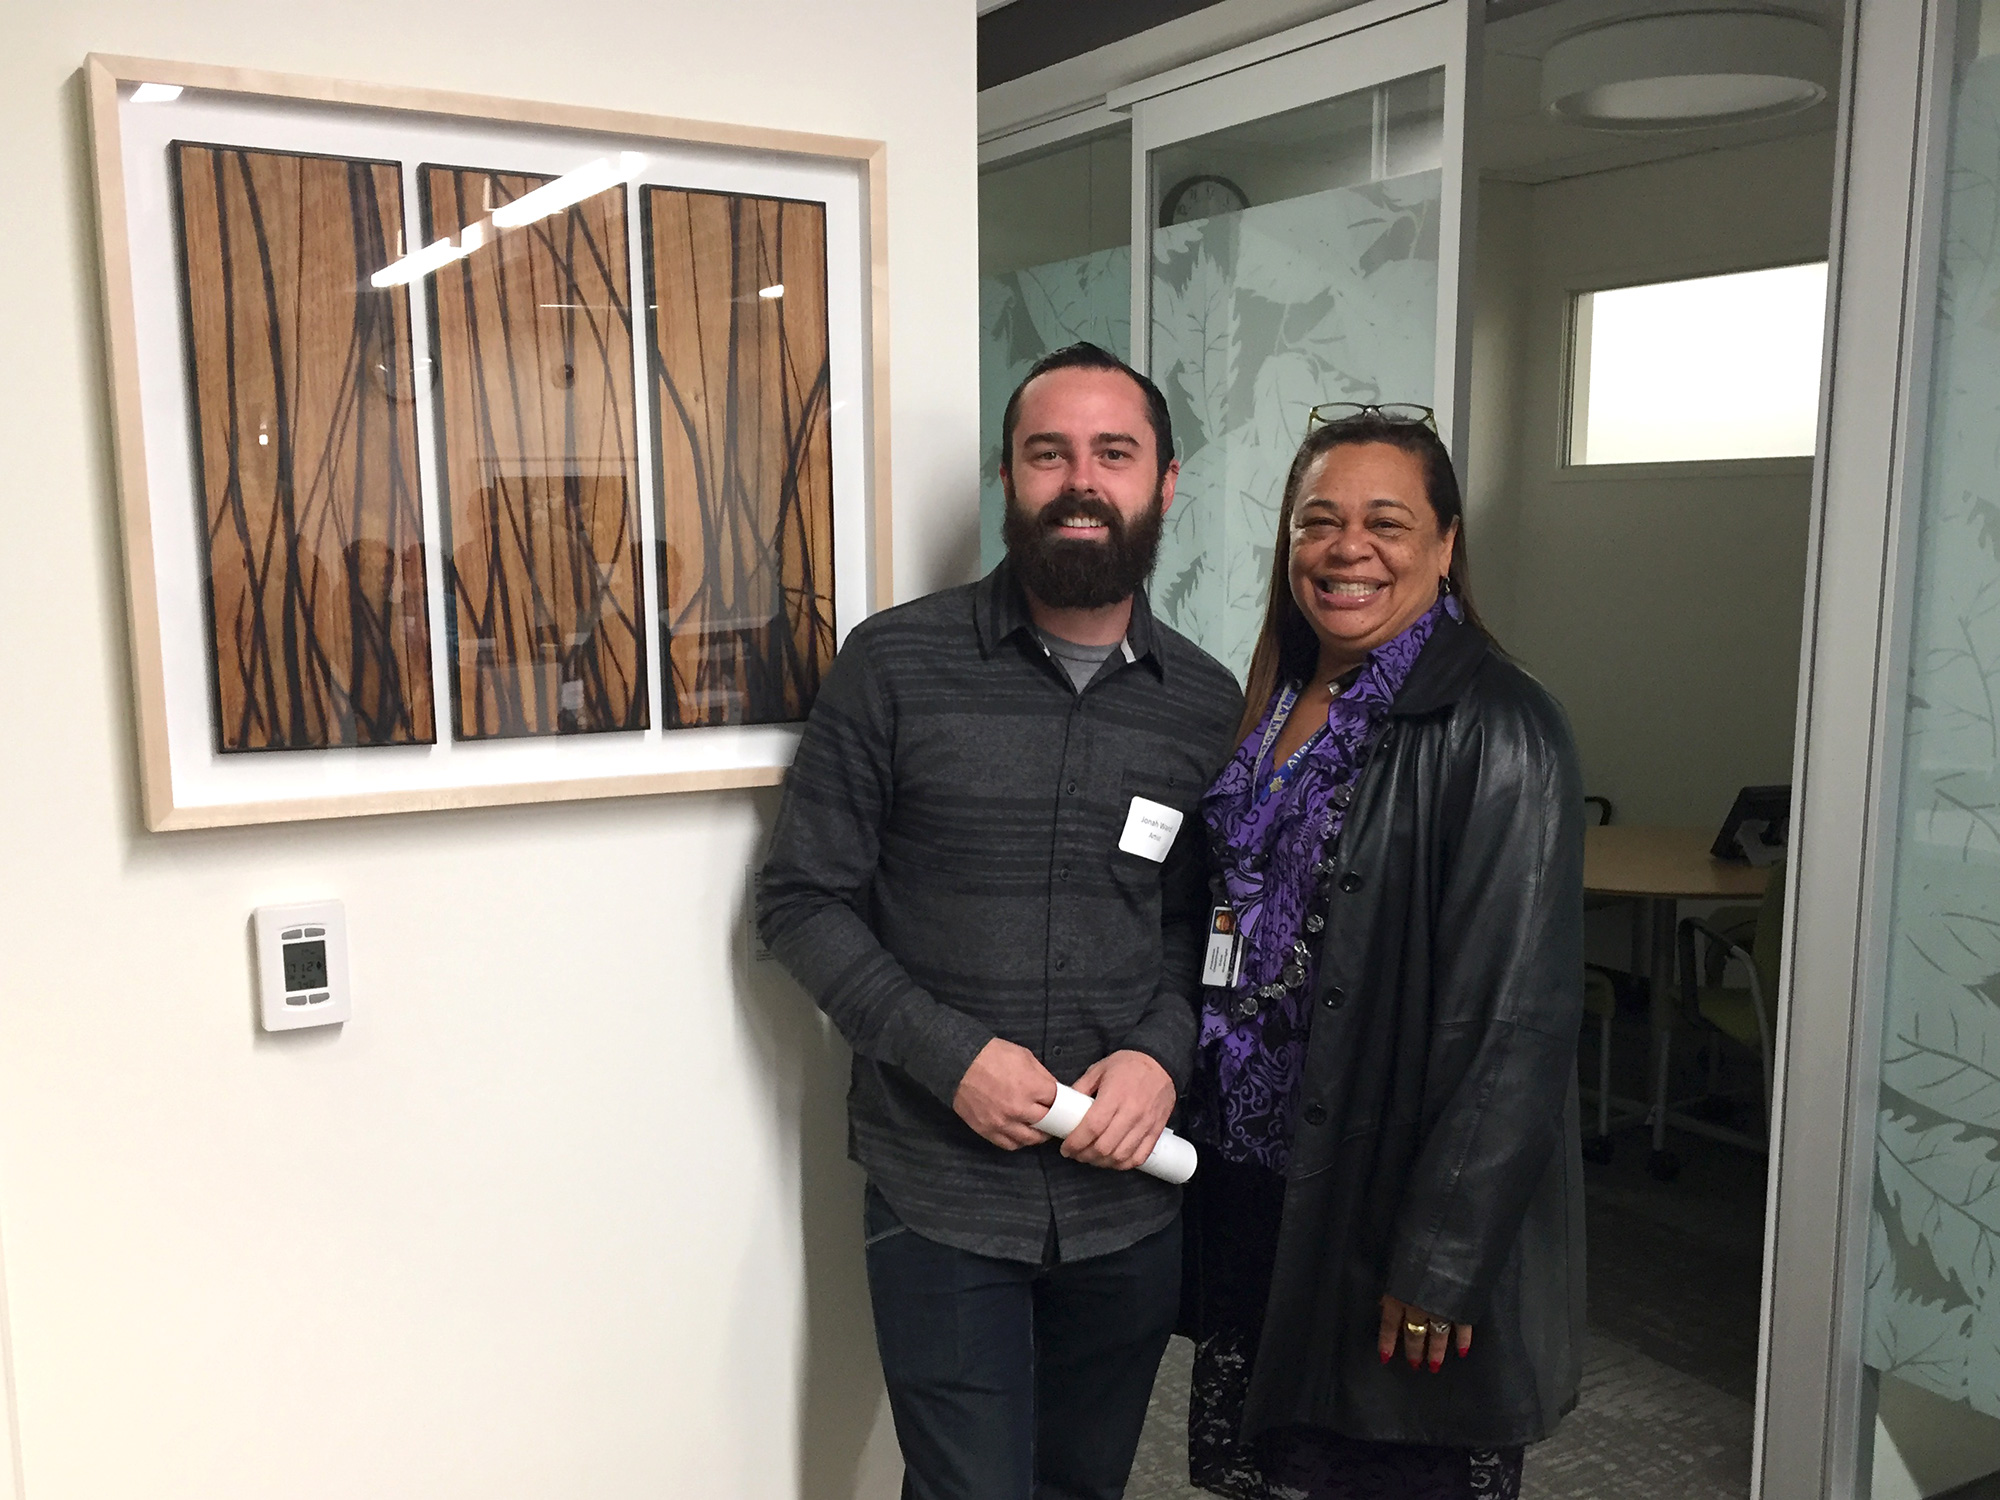 Jonah Ward with Edna Boatwright, an Artwork Selection Committee Member, standing next to one of his glass burned panels selected for the building.